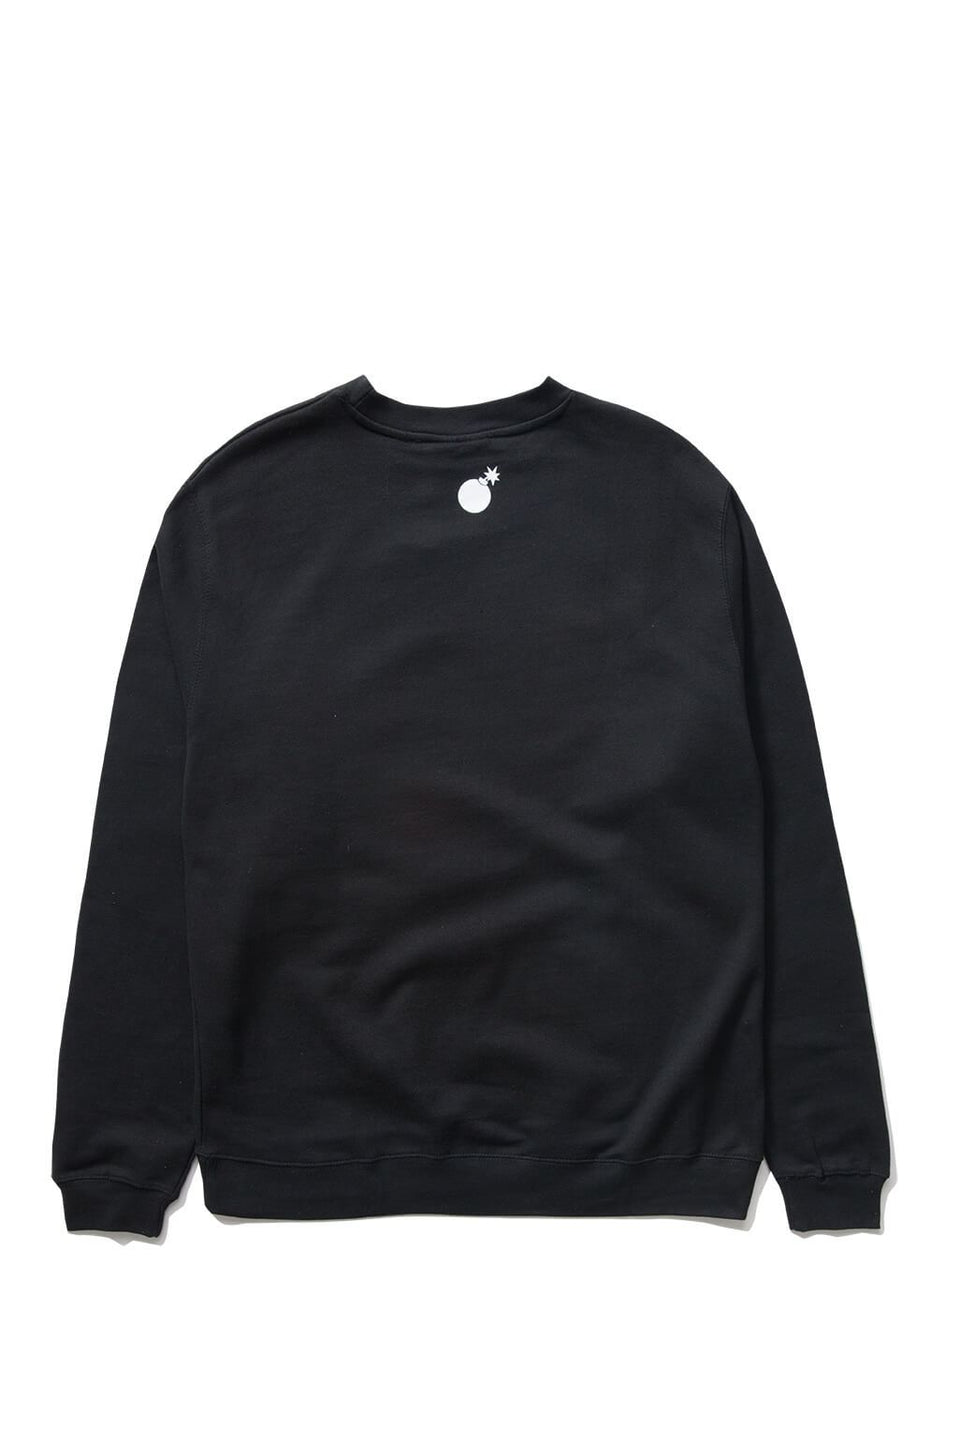 The Hundreds Forever Bar Crewneck Sweatshirt Black Back